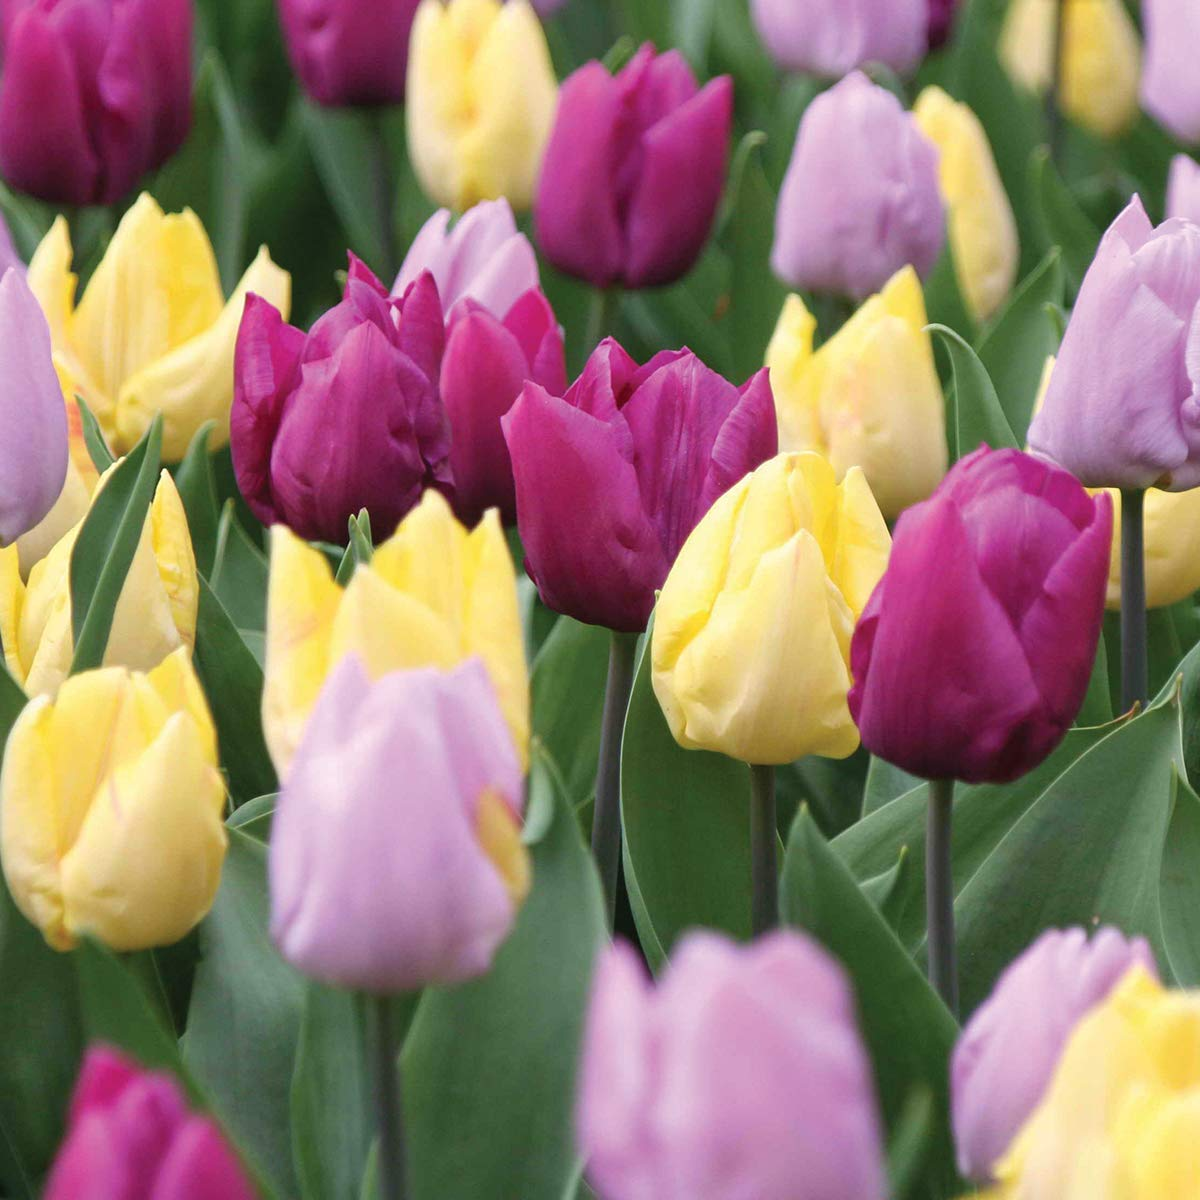 Burpee Early Prince Tulip Mix   15 Large Flowering Fall Bulbs for Planting, Lavender, Yellow & Purple by Burpee